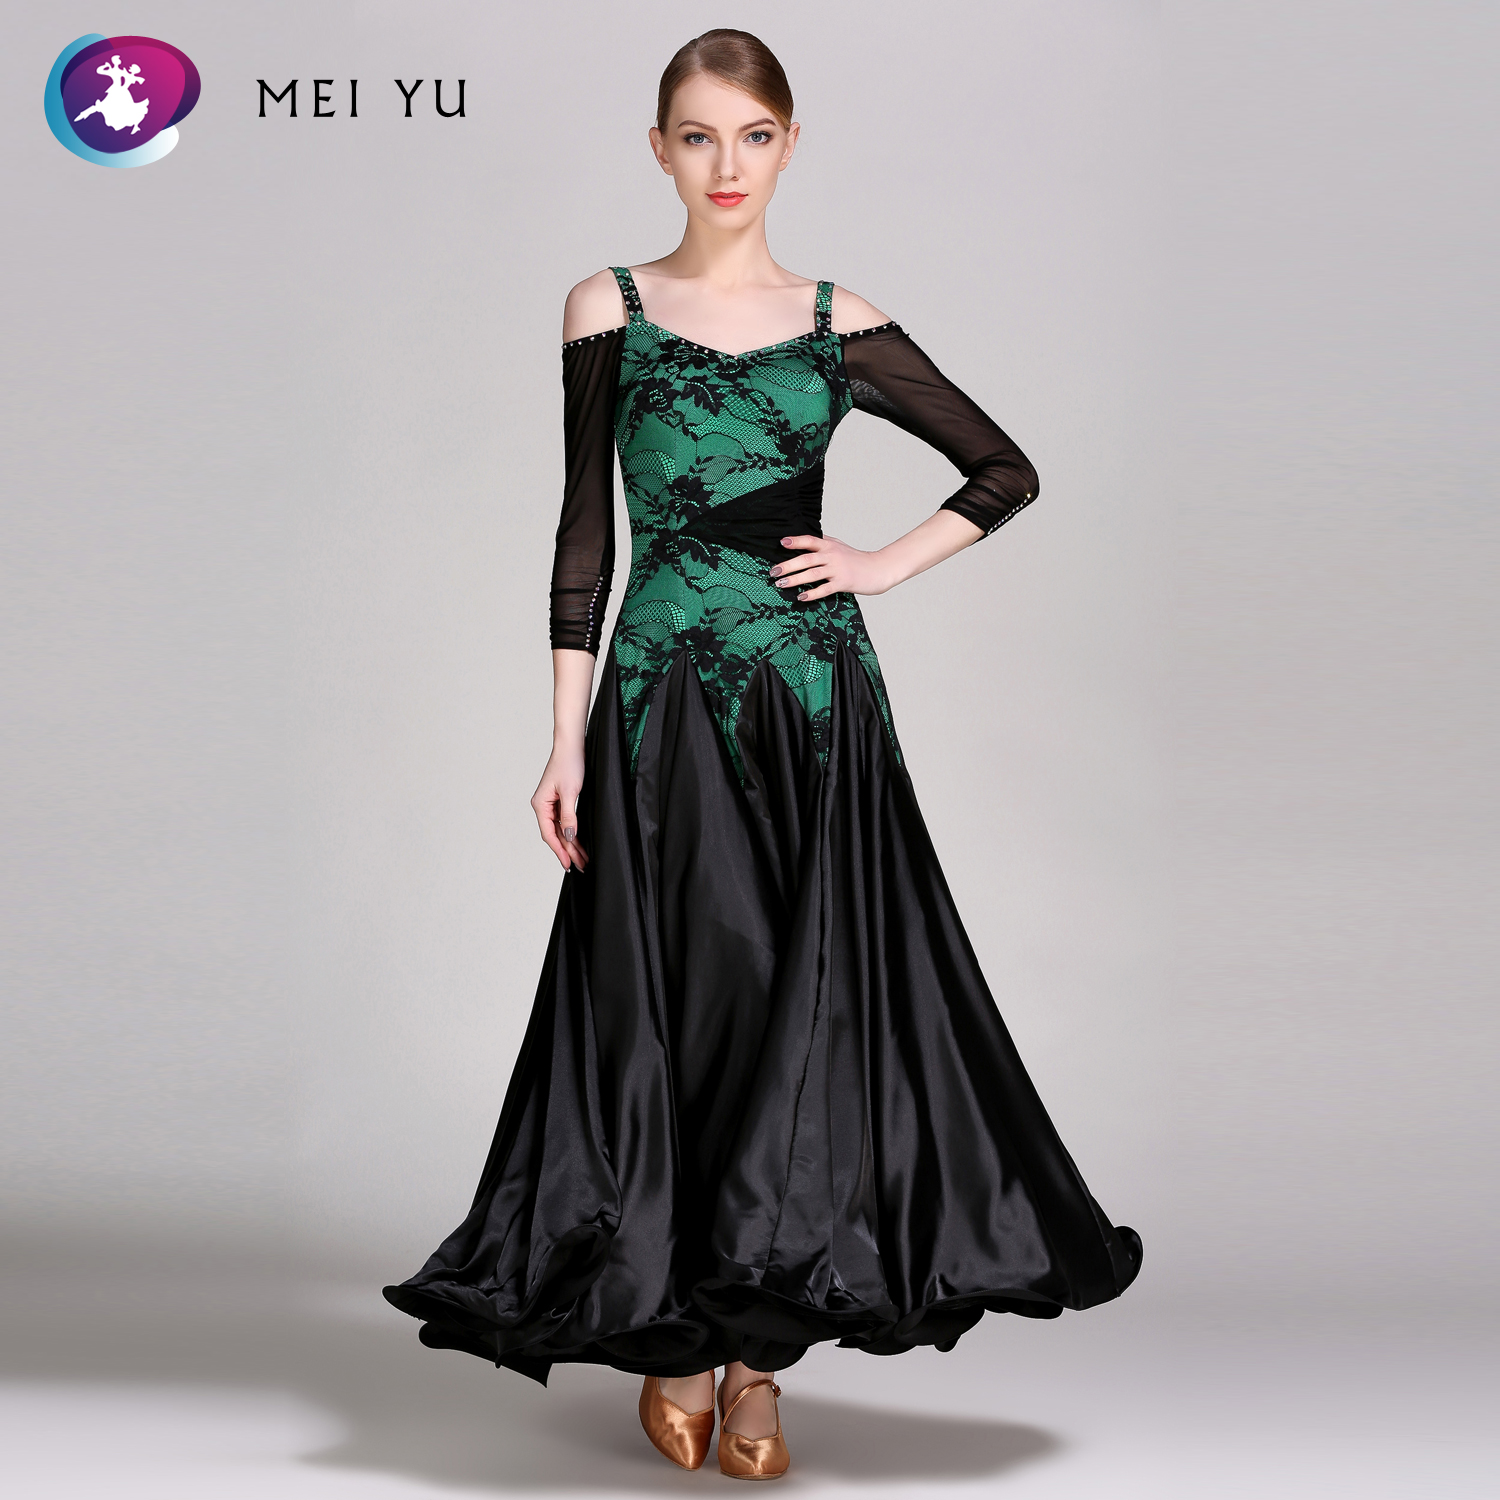 MEI YU 302 Modern Dance Costume Women Ladies Rhinestone Waltzing Tango Dancing Dress Ballroom Costume Evening Party Dress